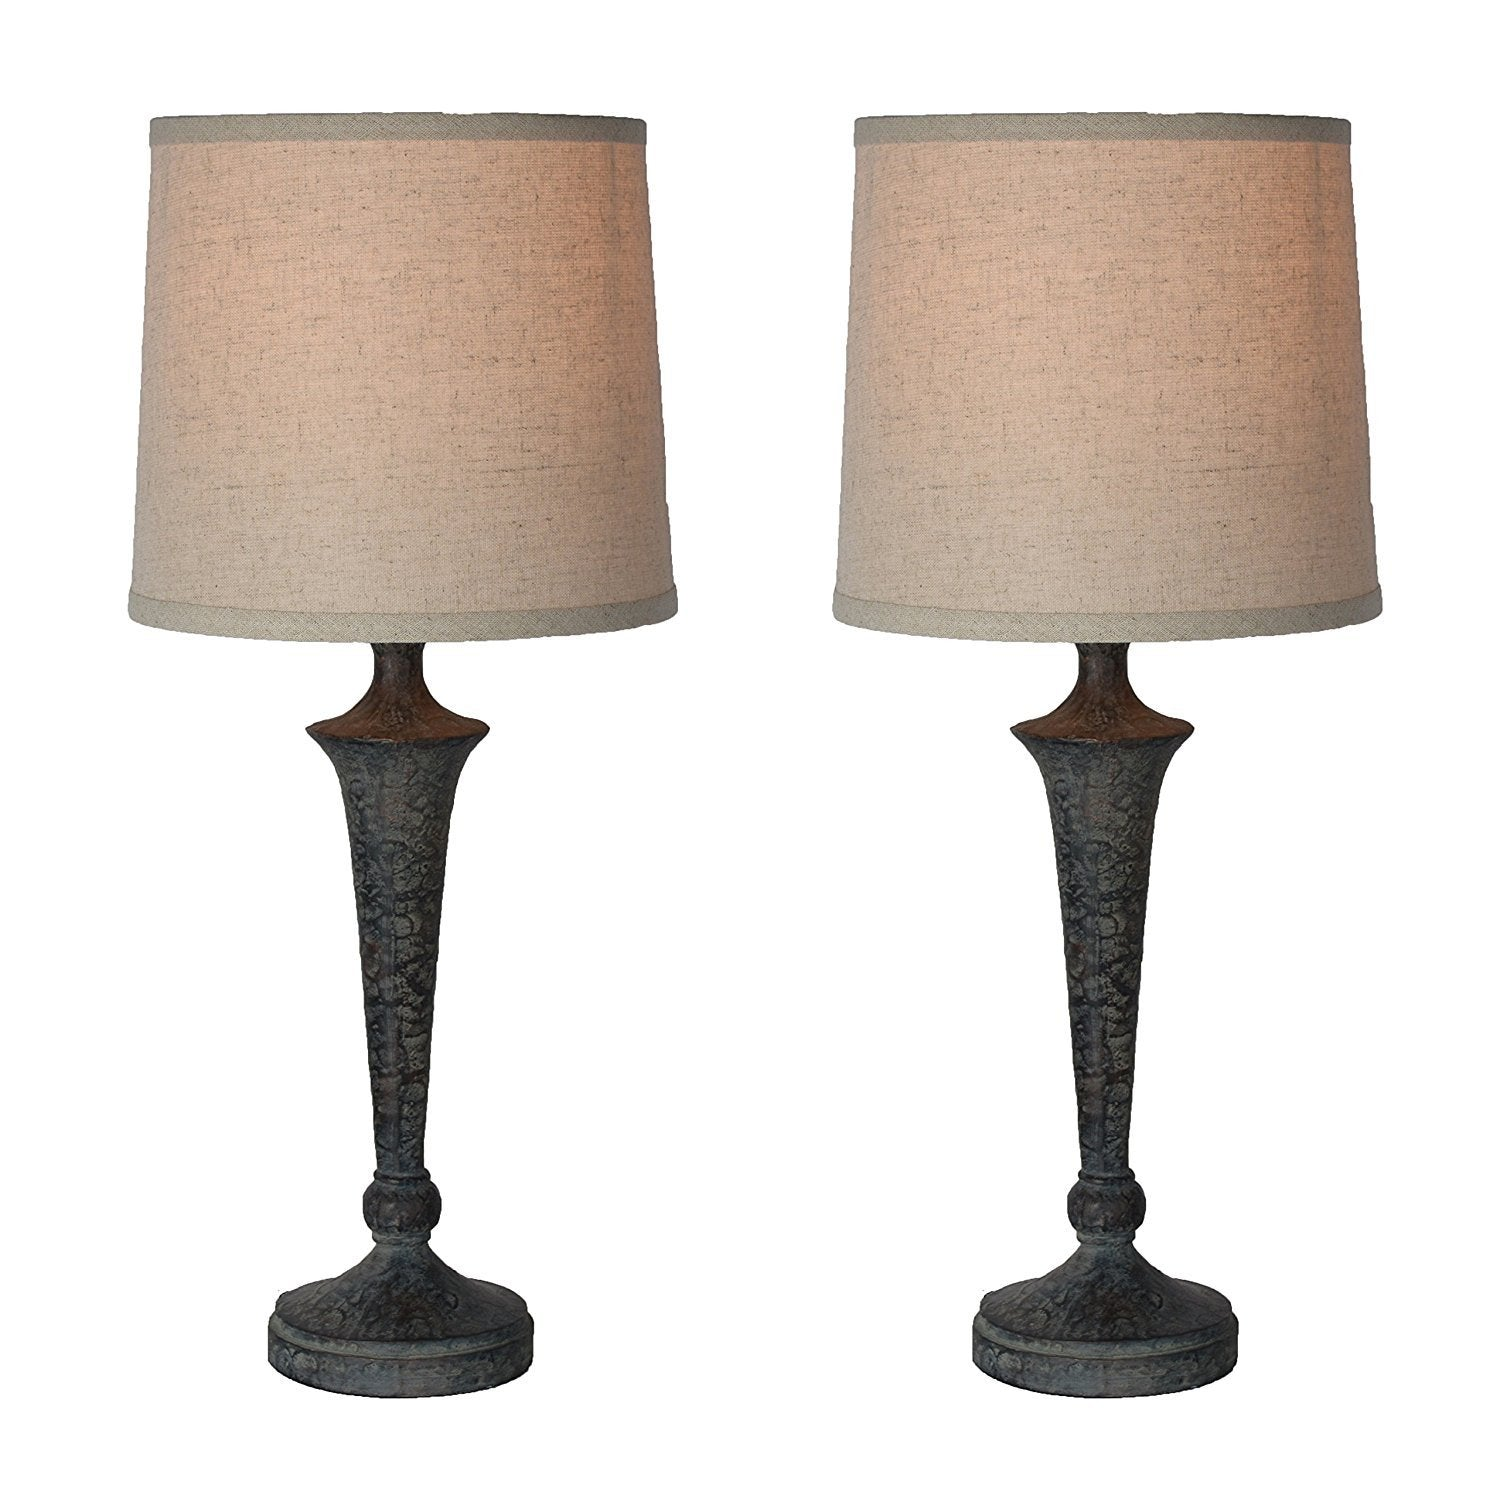 Lovely Jacob Table Lamps Set Of 2   Ash Bronze